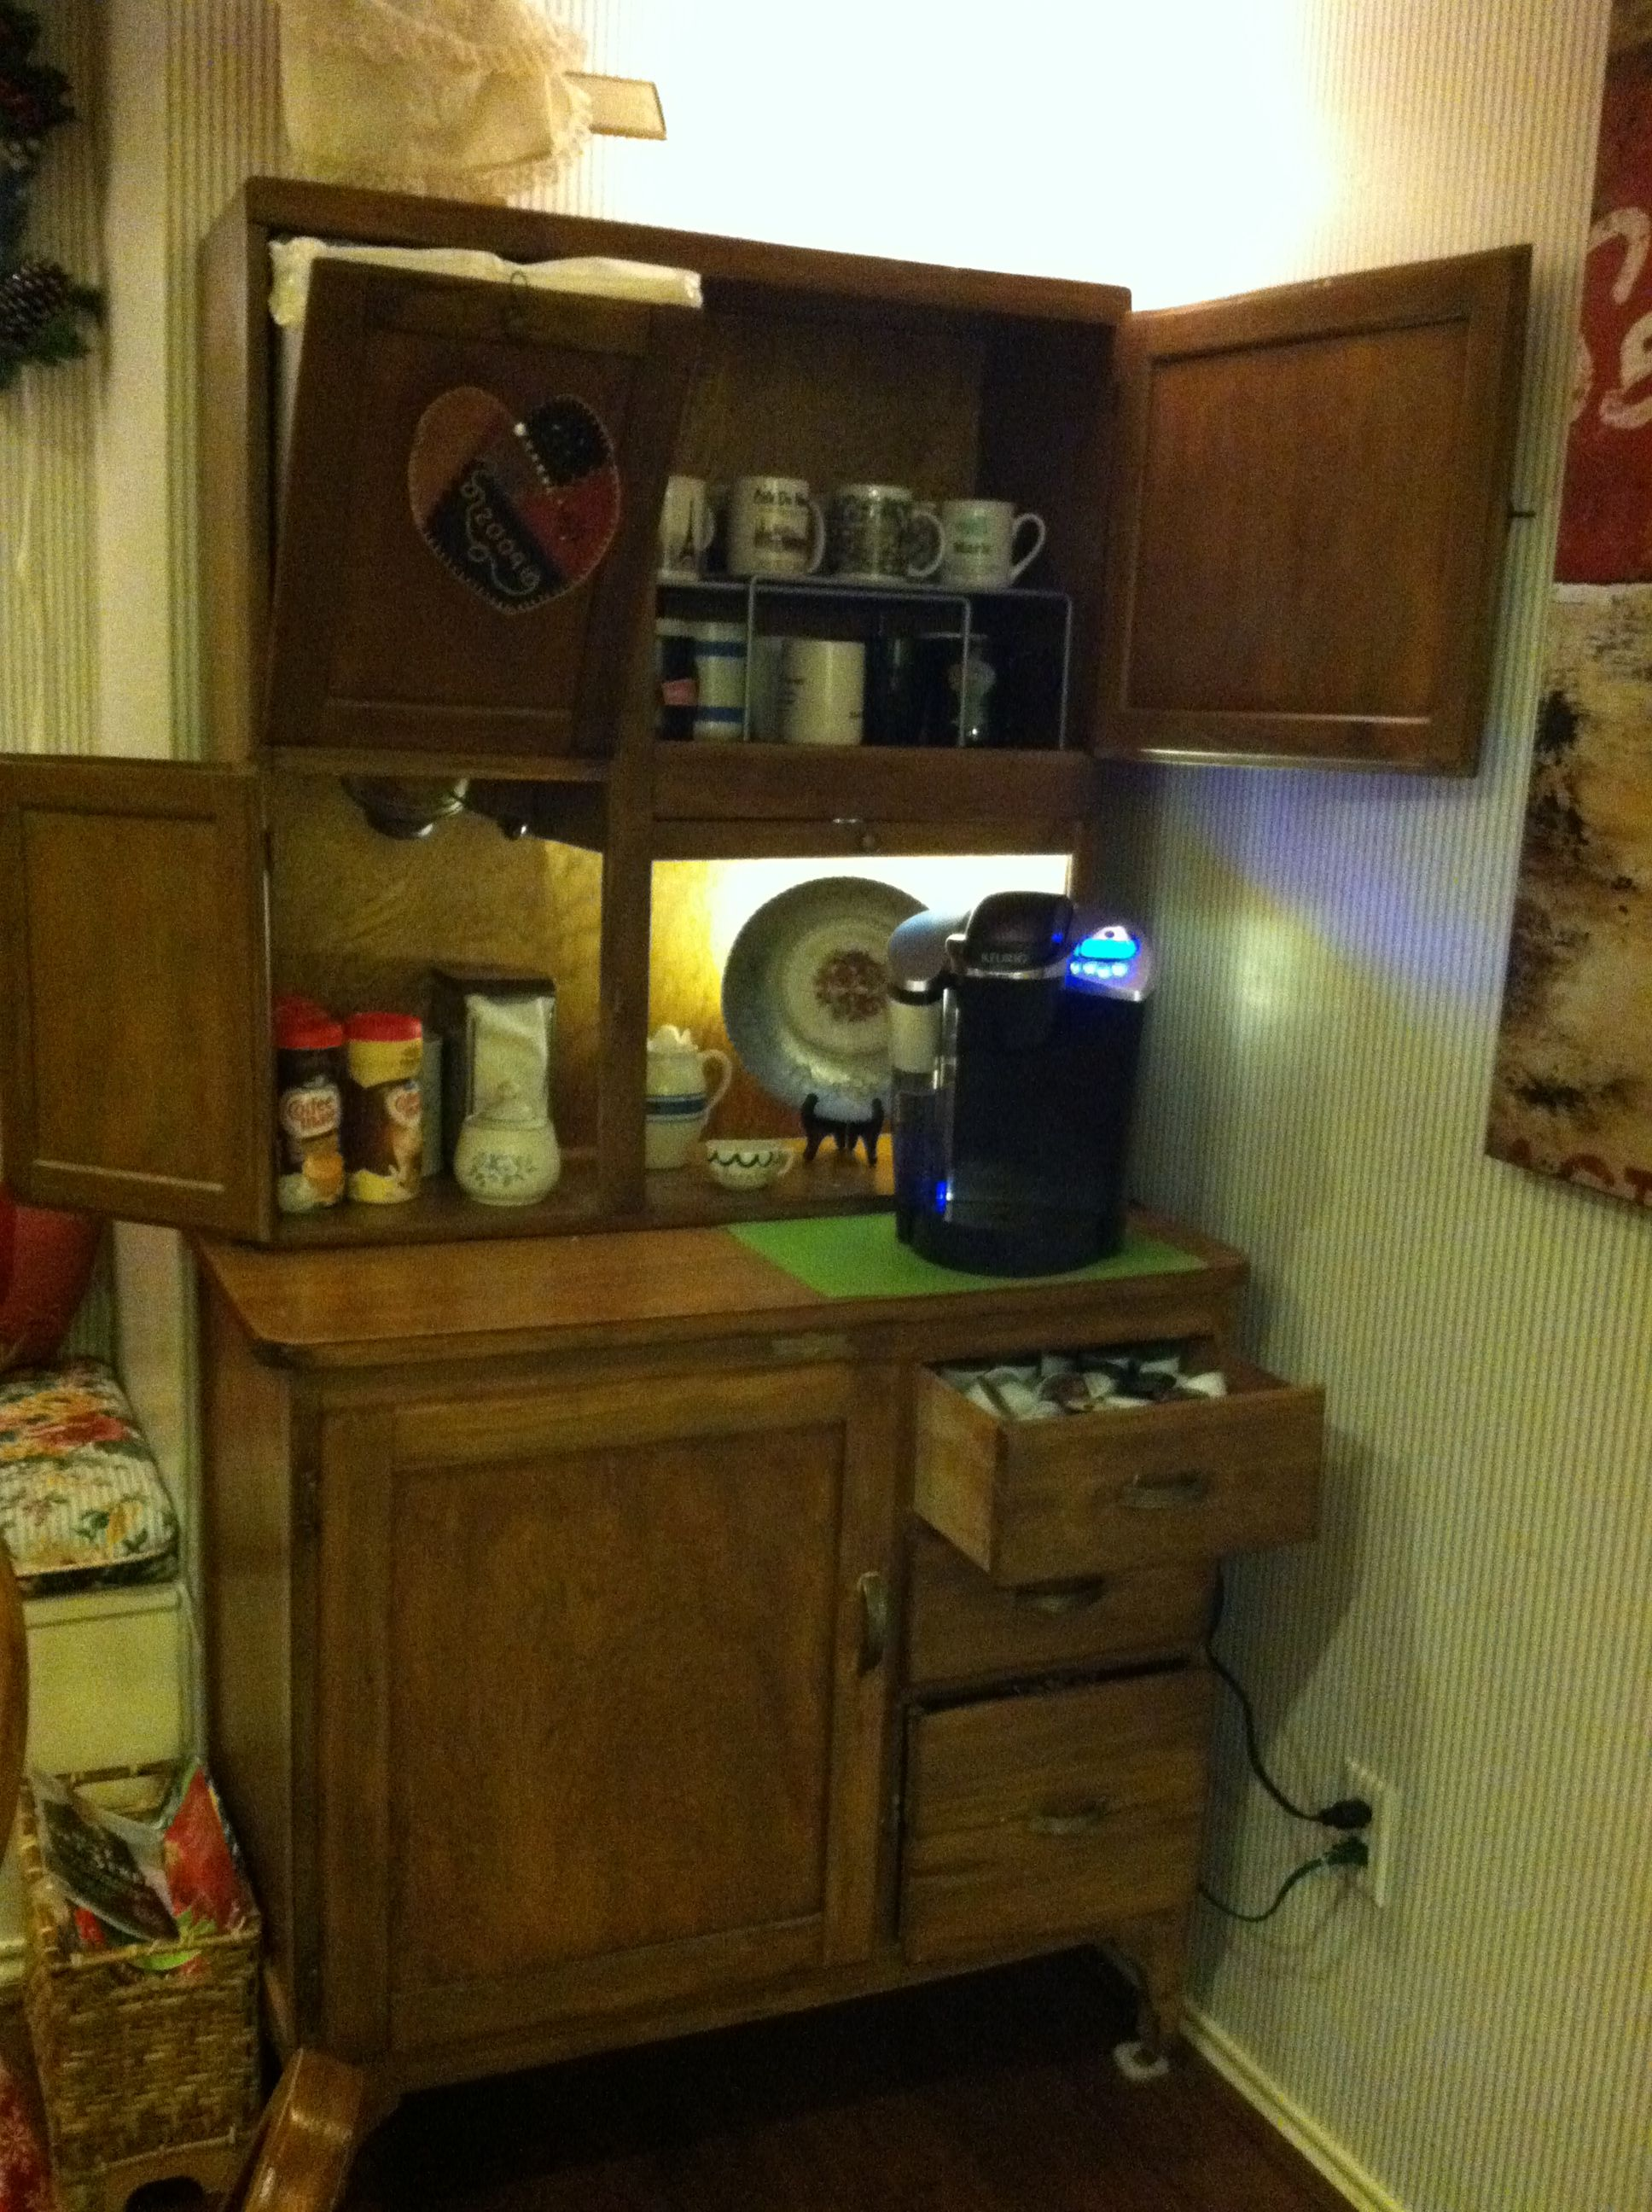 An Old Hoosier Cabinet Repurposed Into A Coffee Center The Flour Bin Is Now The Trash Bin Hoosier Cabinet Hoosier Cabinets Coffee Center